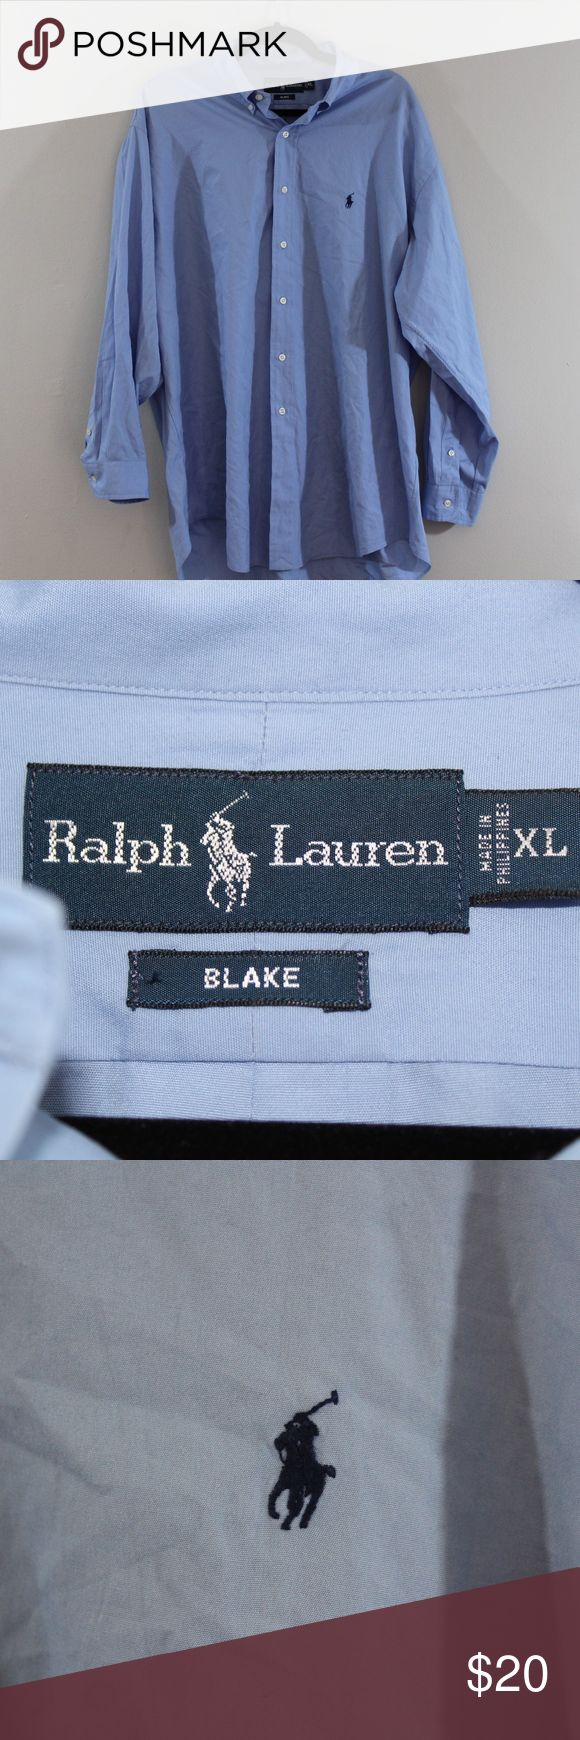 XL Ralph Lauren Blake Long Sleeve Dress Shirt Blue Ralph Lauren Blake Dress Shirt  Excellent dress shirt  Comes from a smoke-free household  Blue with a Blue Pony logo  The size is XL and the measurements are 30 inches pit to pit and 33.5 inches shoulder to base  Cotton  Thanks for looking, please do not hesitate to contact me   Check out my other items for sale in my store!  M1 Ralph Lauren Shirts Dress Shirts